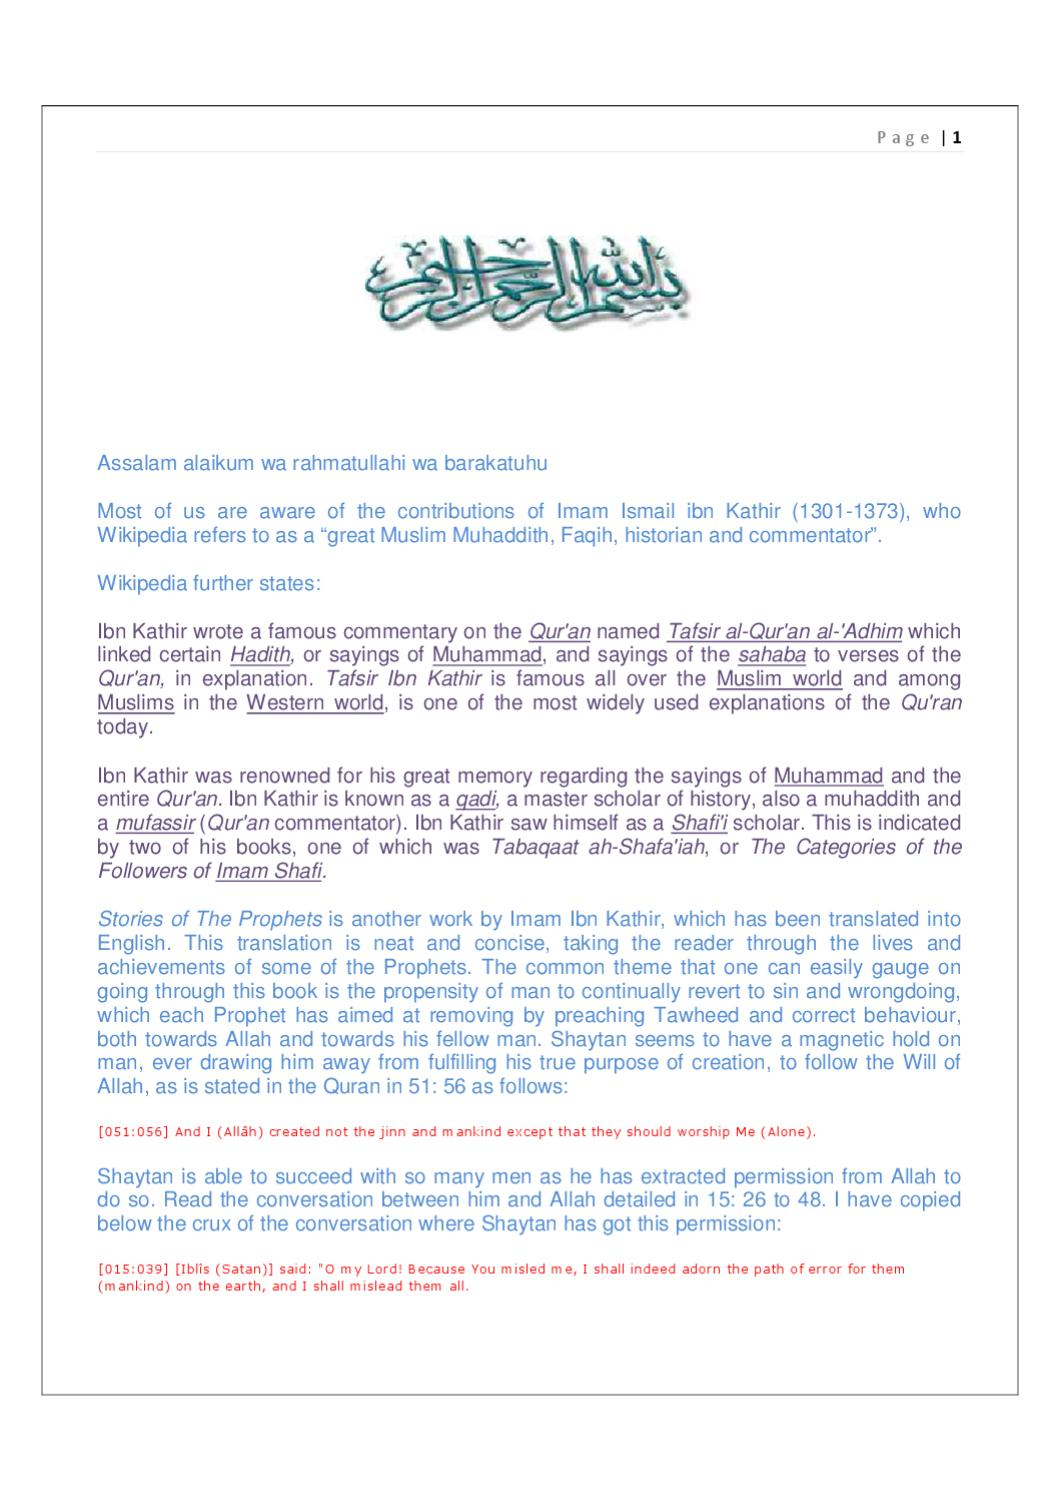 IBN KATHIR - STORIES OF THE PROPHETS by Islamic Books - issuu